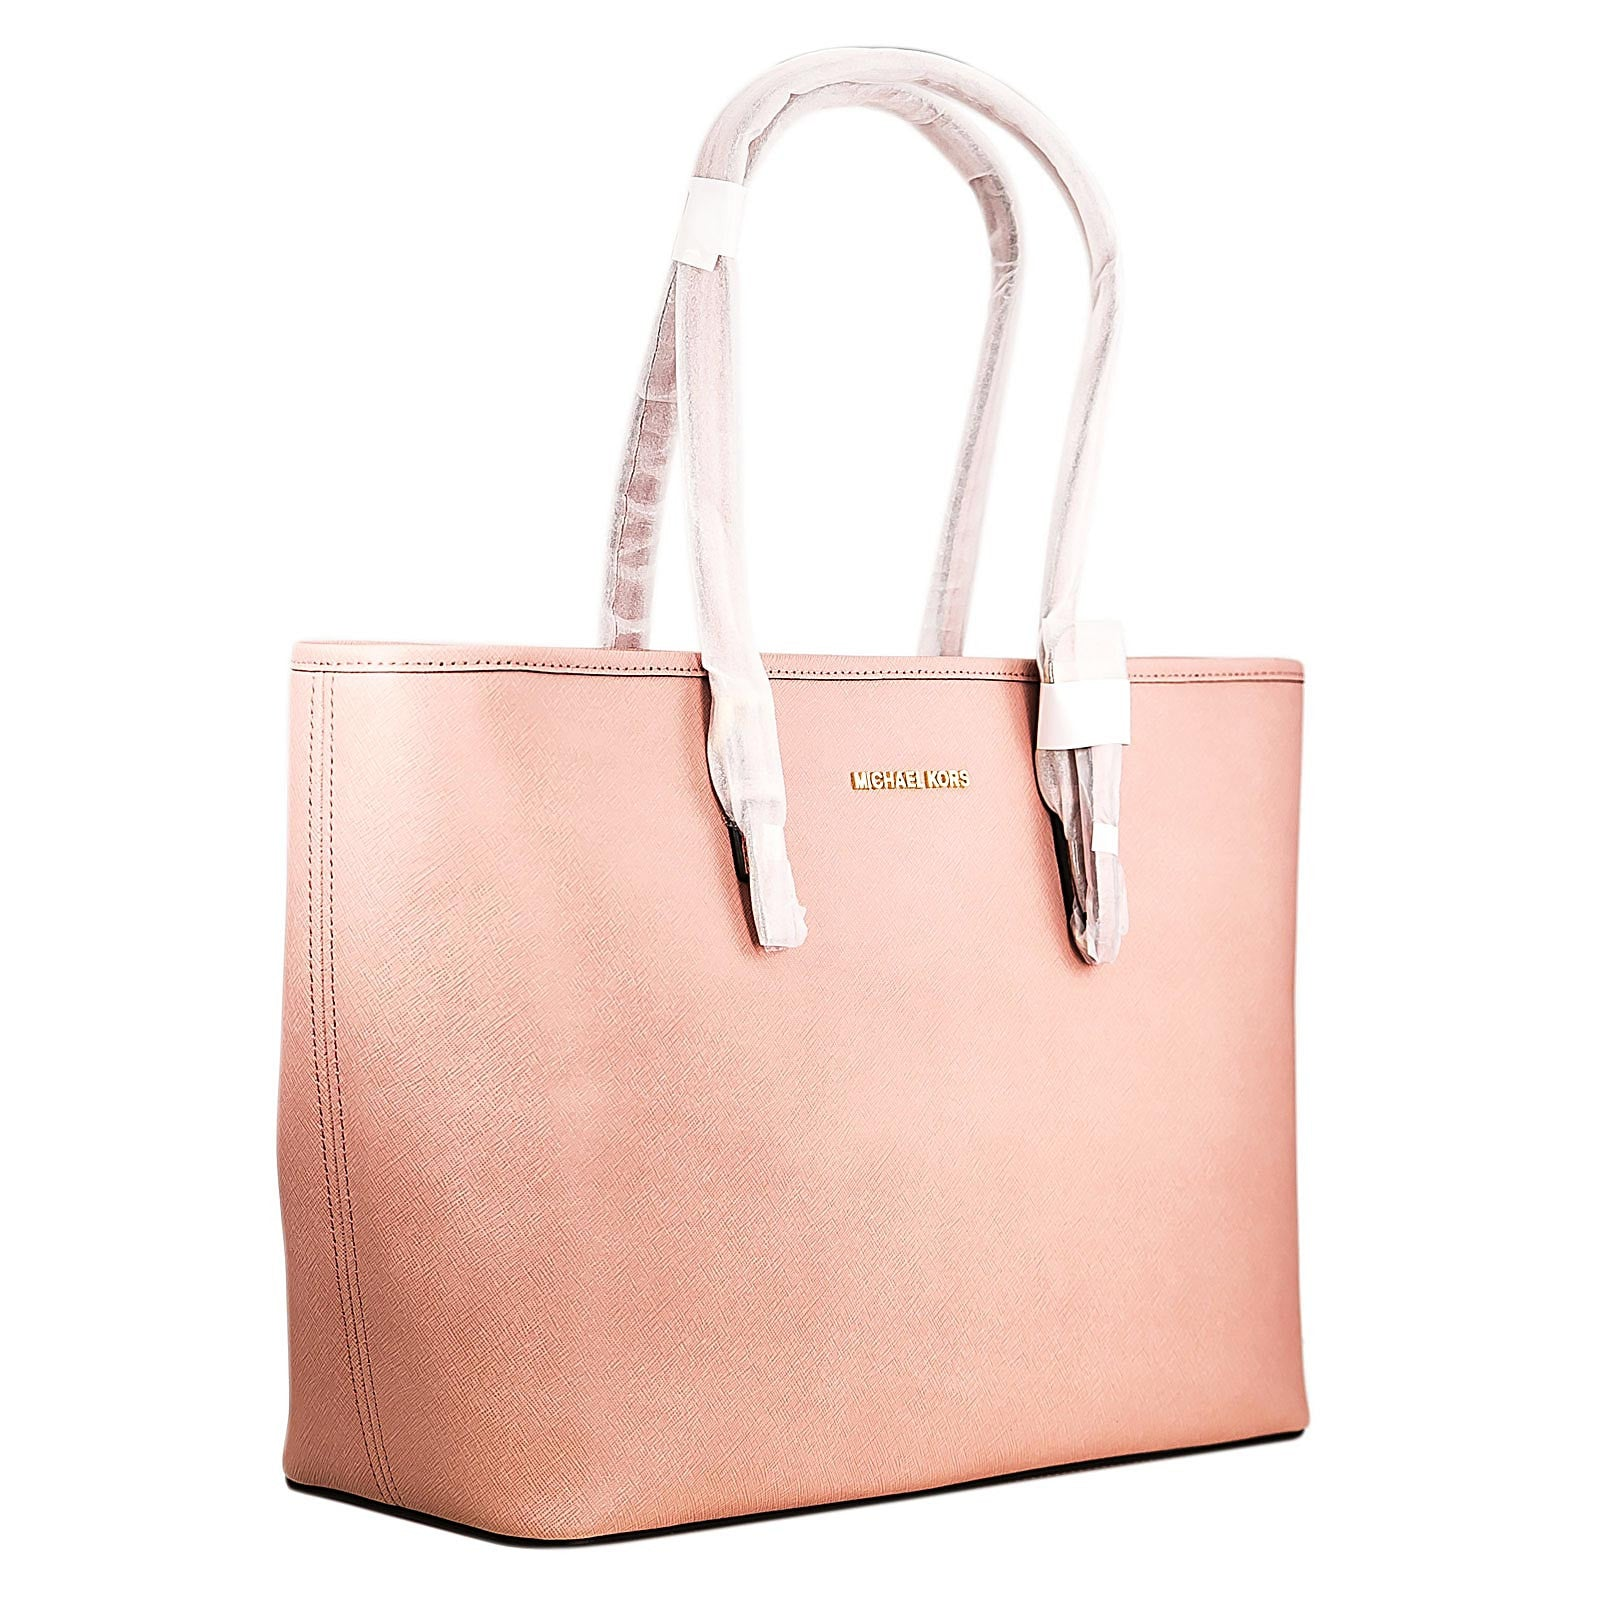 Michael Kors 30T5GTVT2L-695 Women's Jet Set Travel Top-Zip Pale Pink Saffiano Leather Medium Tote